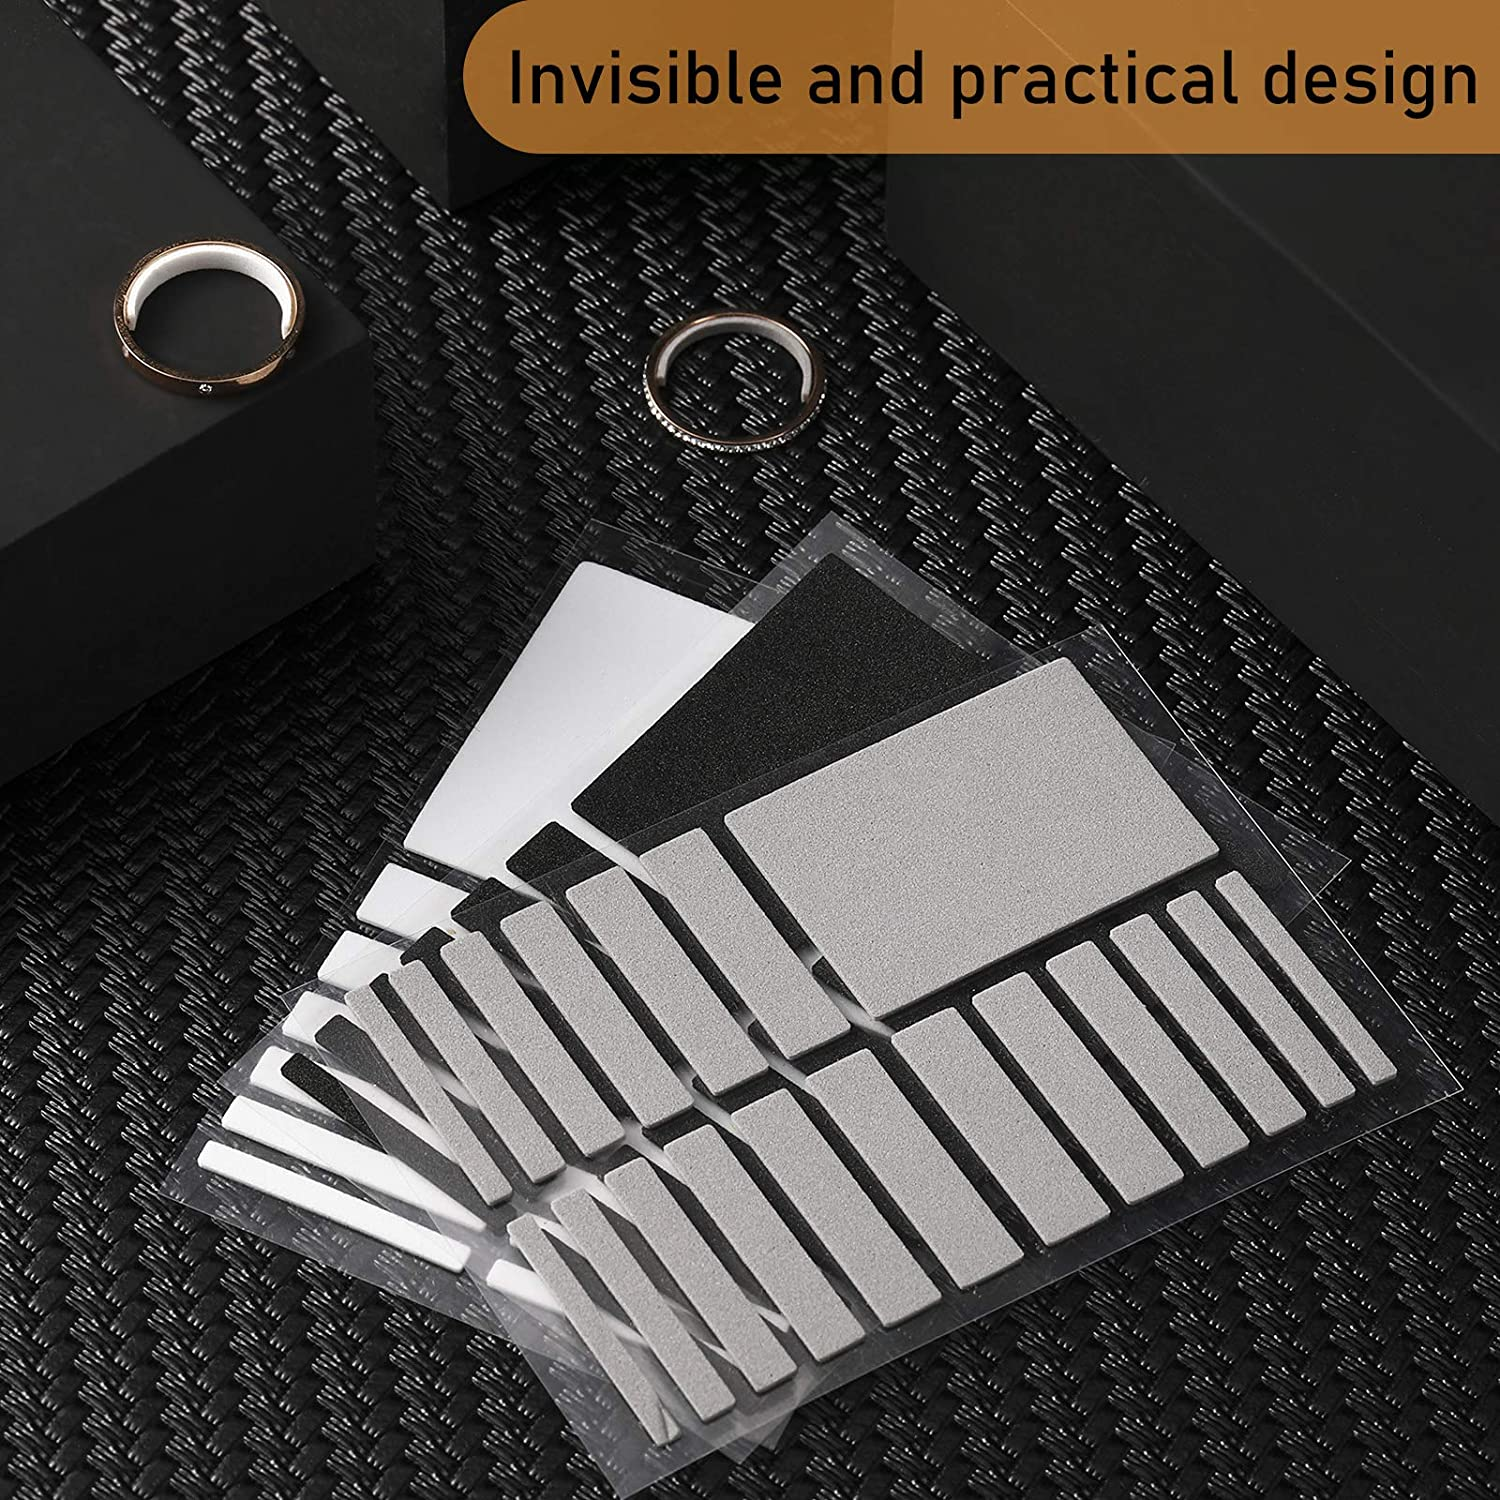 114 Pieces// 6 Sheets Invisible Ring Size Adjuster Loose Ring Sizer Jewelry Ring Guard Ring Smaller Spacer Loose Ring Tightener Ring Fixed Piece for Preventing Ring from Loosening and Slipping Off